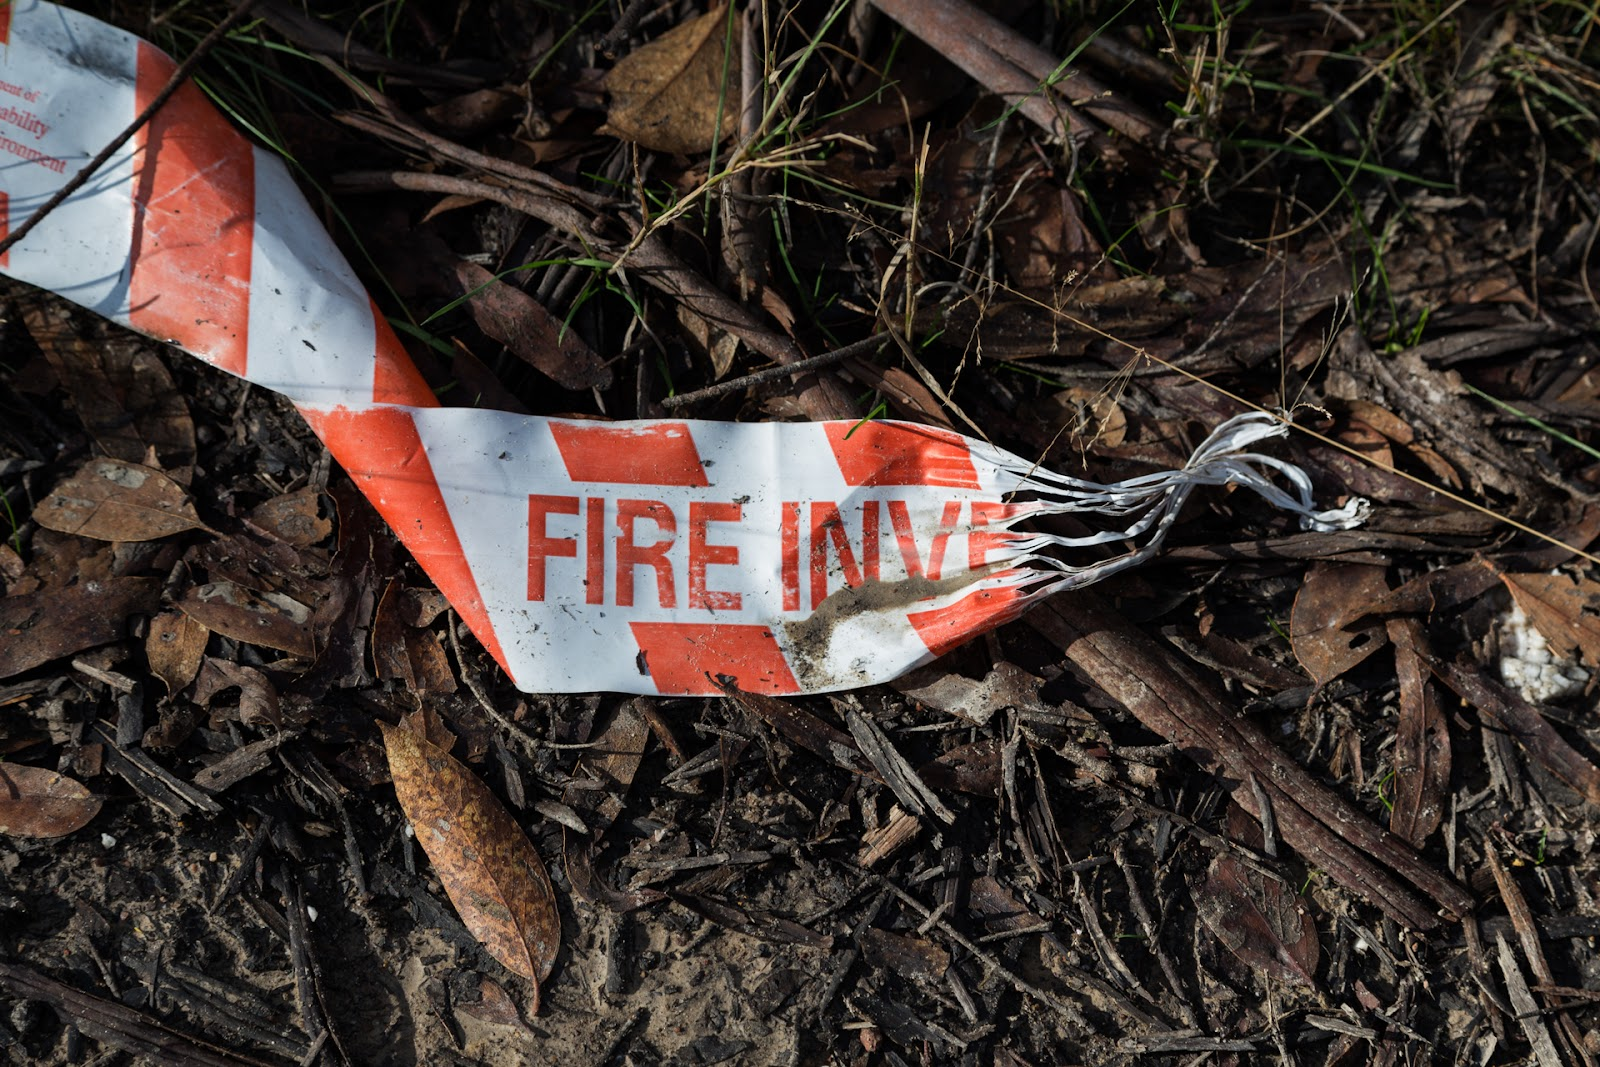 fire investigation tape lying in forest